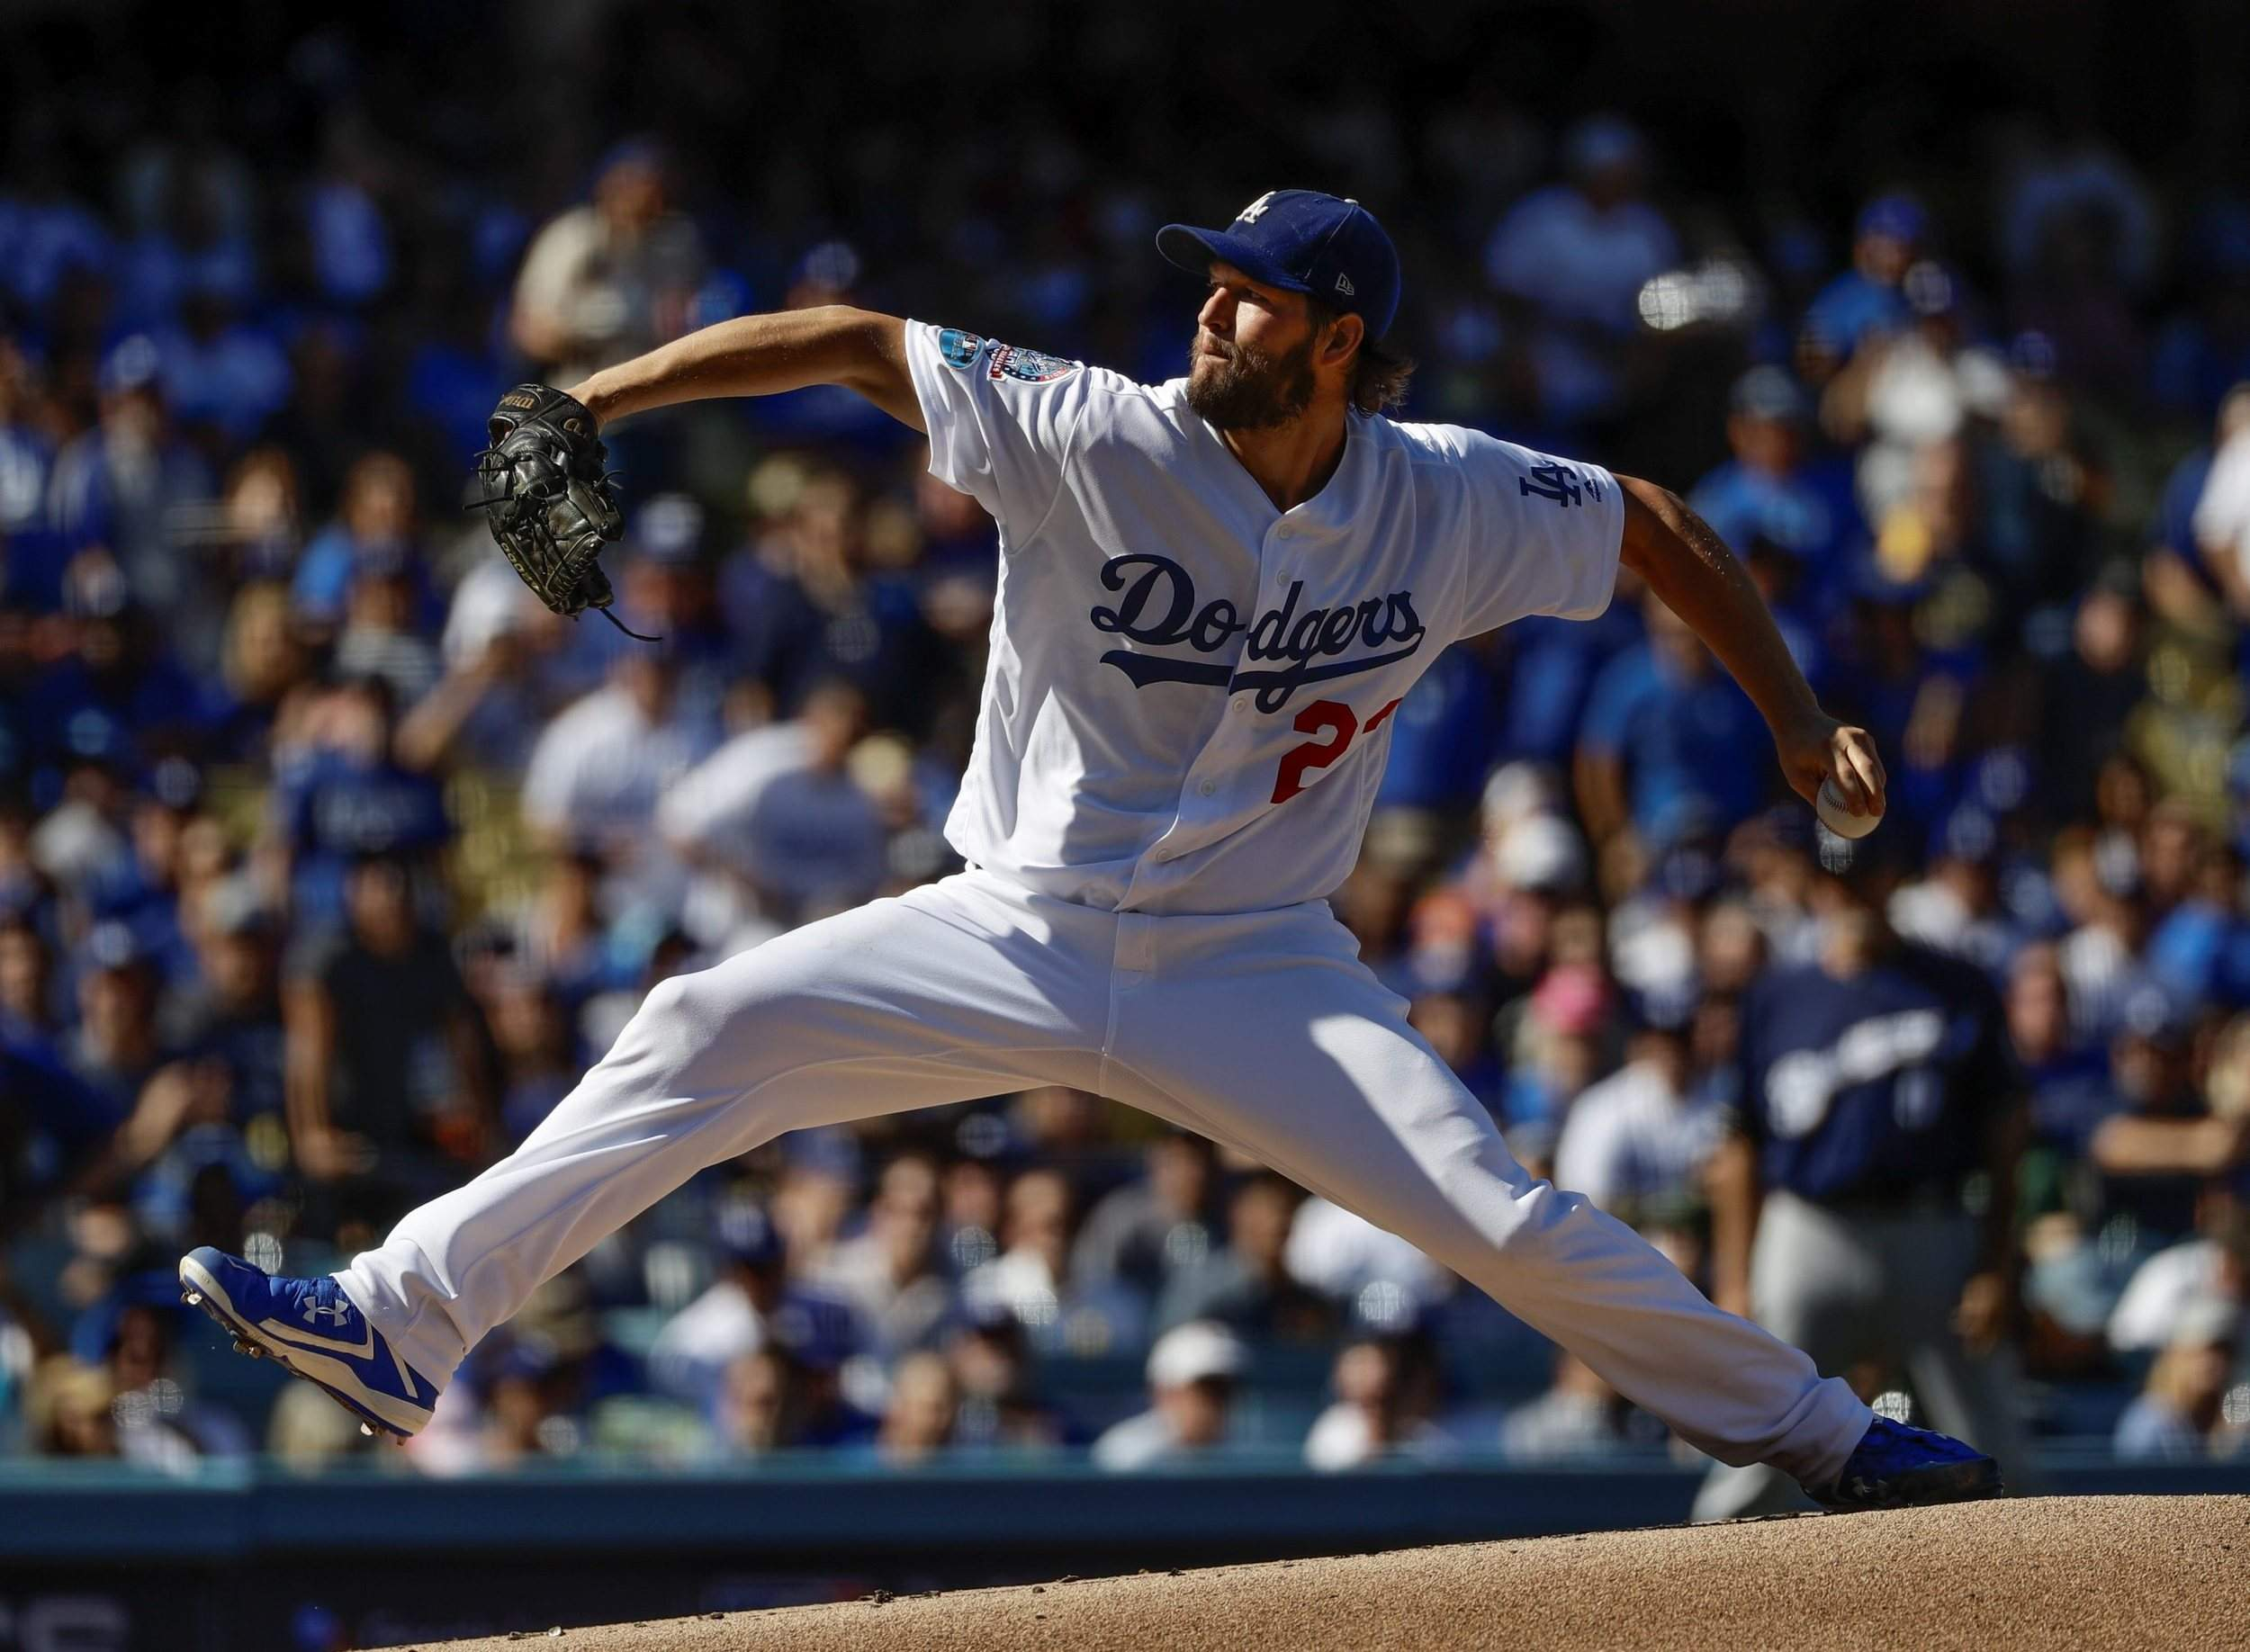 clayton kershaw delivers, dodgers beat brewers to take nlcs leadlos angeles dodgers starting pitcher clayton kershaw pitches during the first inning of game 5 of the national league championship series against the